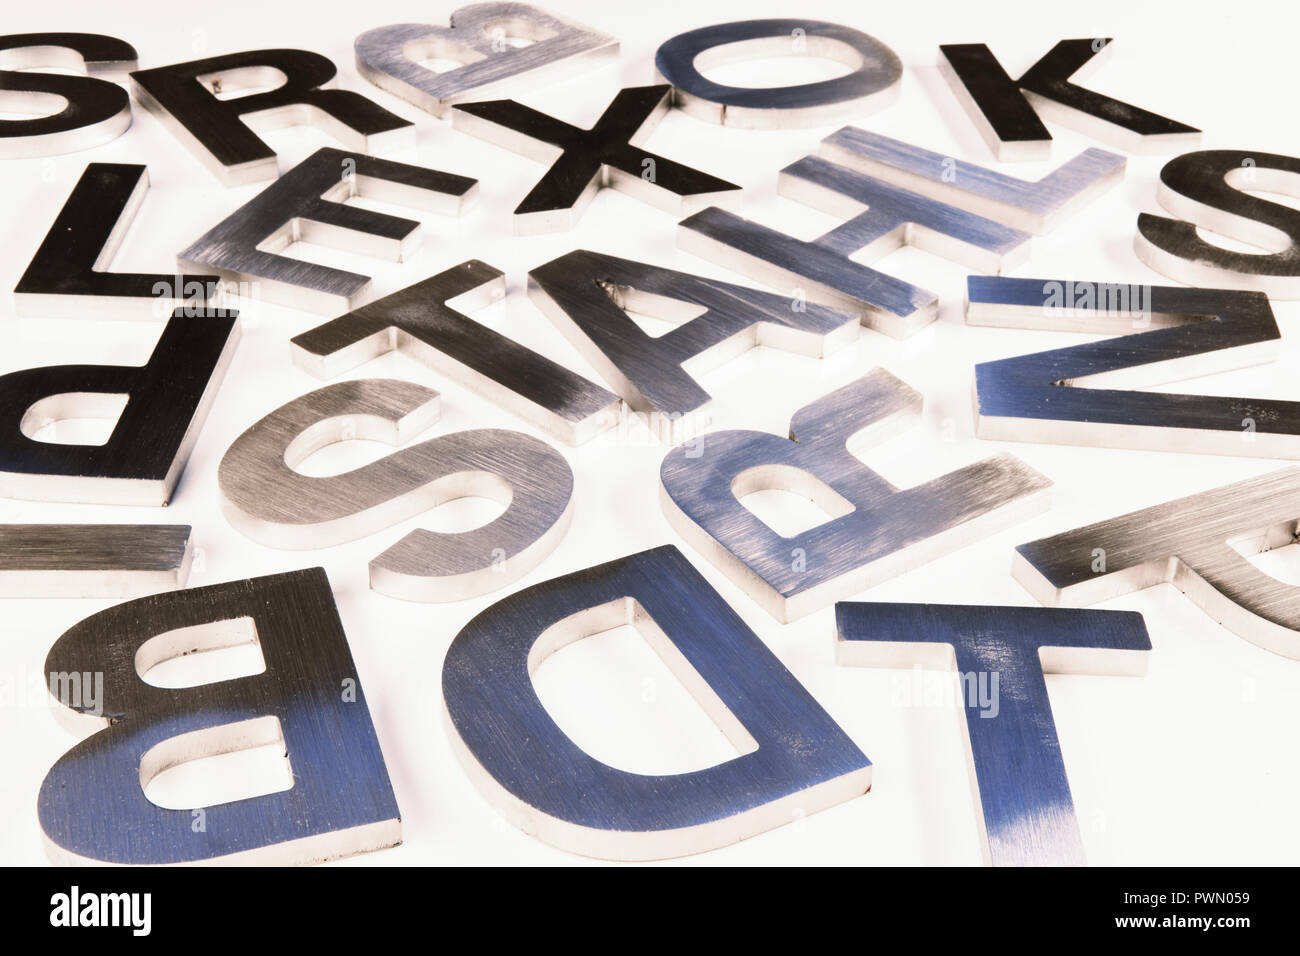 Shiny letters milled from metal lying on table. - Stock Image